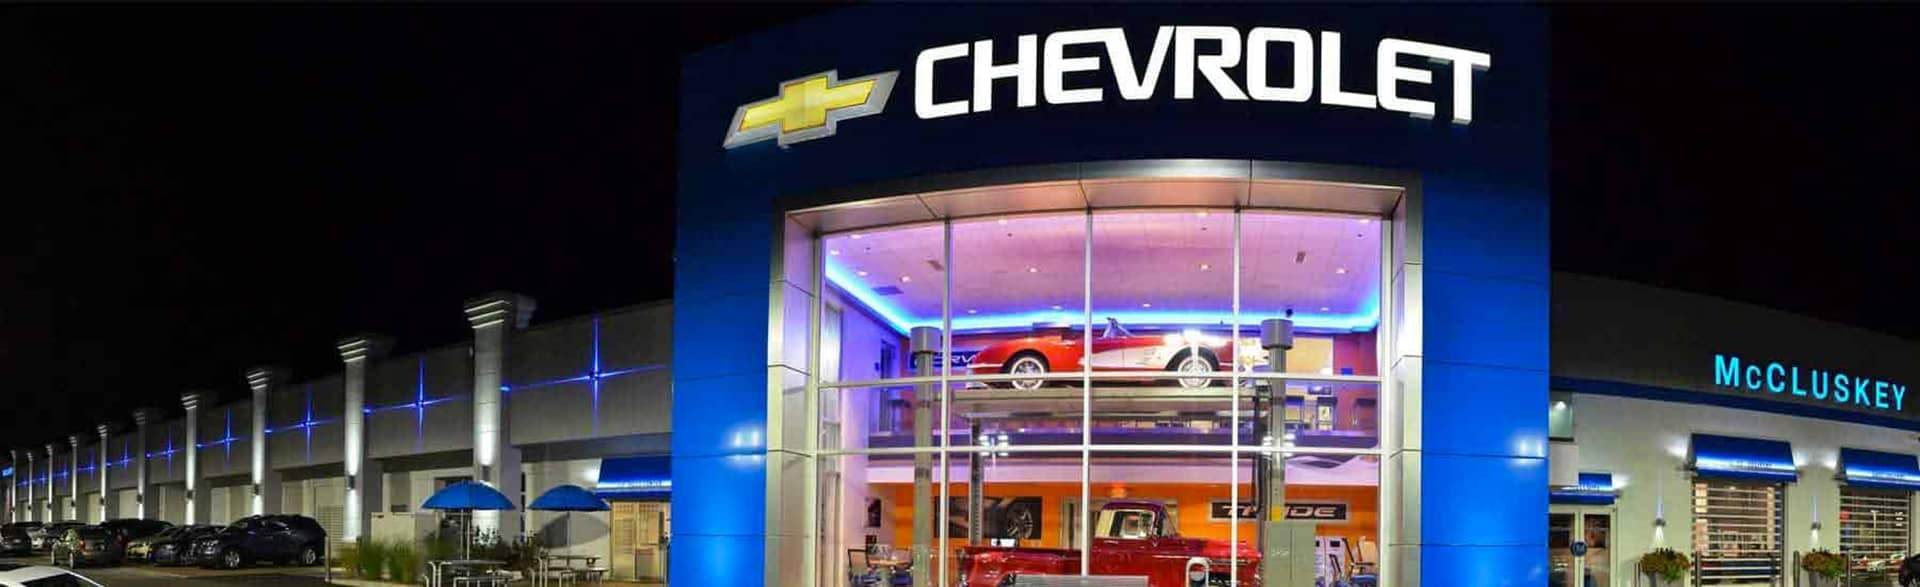 Mccluskey Chevrolet Cincinnati Oh New And Used Auto Dealership